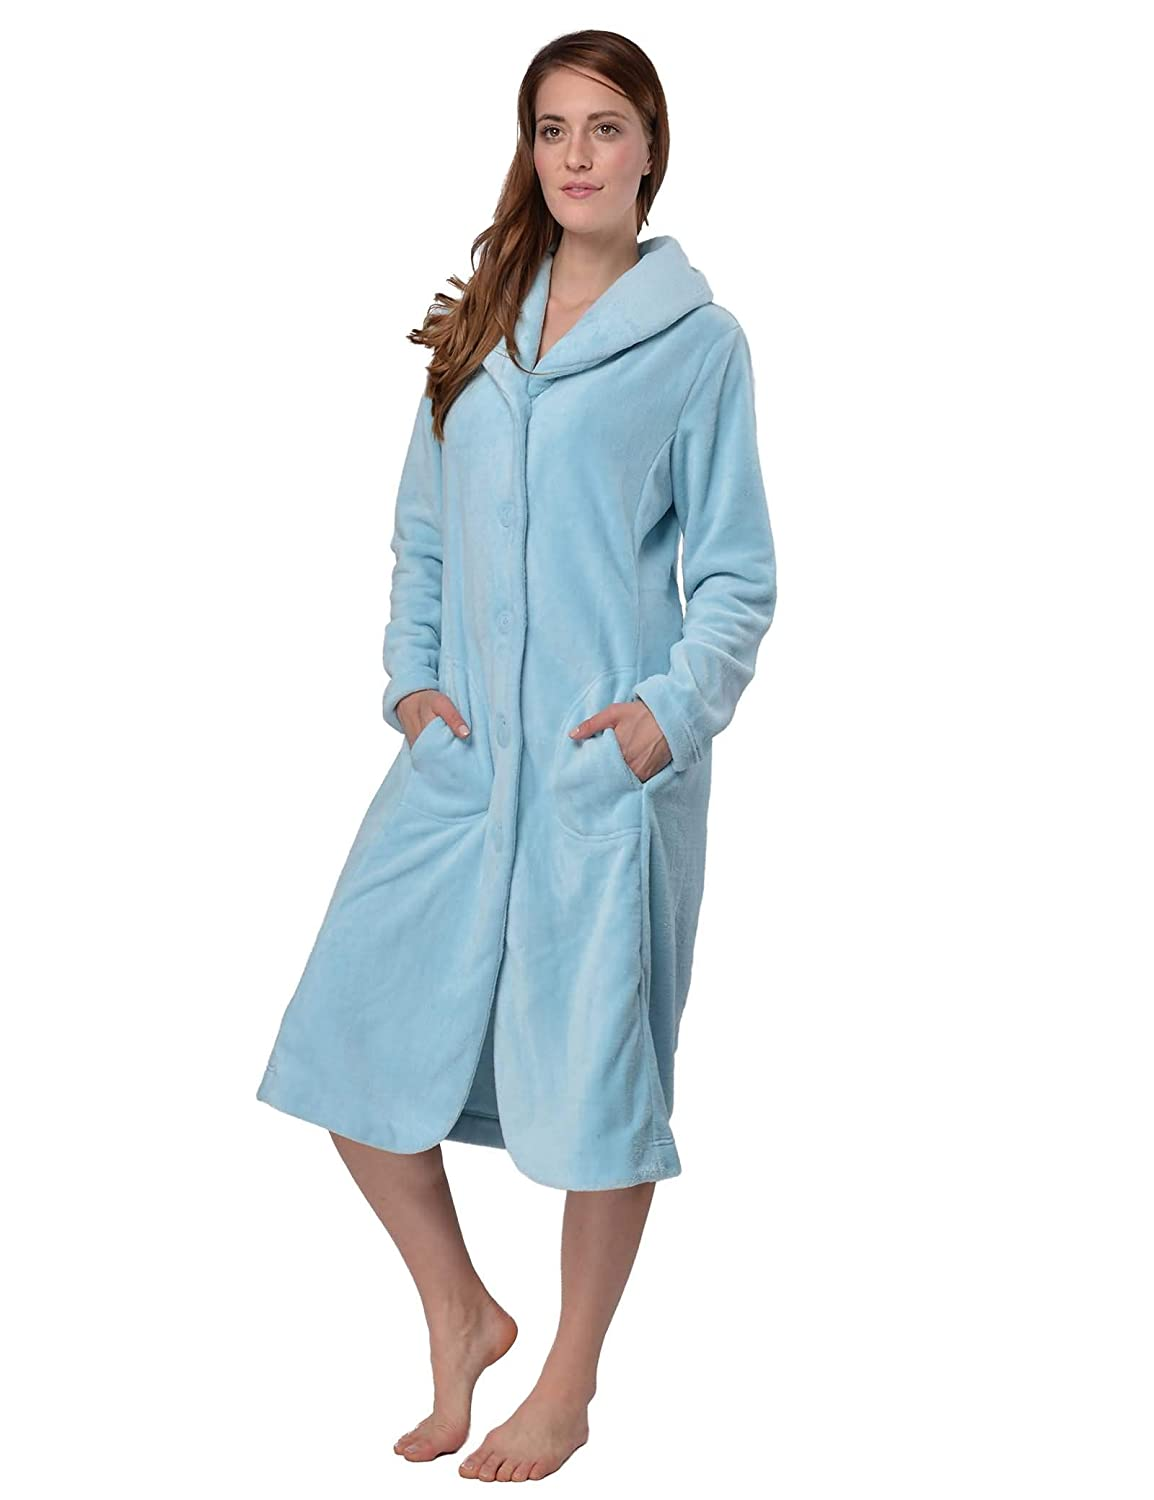 8db329a021 RAIKOU Women s Bath Robe Dressing Gown Lounge Robe with Buttons Soft and  Super Fluffy Coral Fleece Relax Cuddly Terry Microfiber  Amazon.co.uk   Clothing